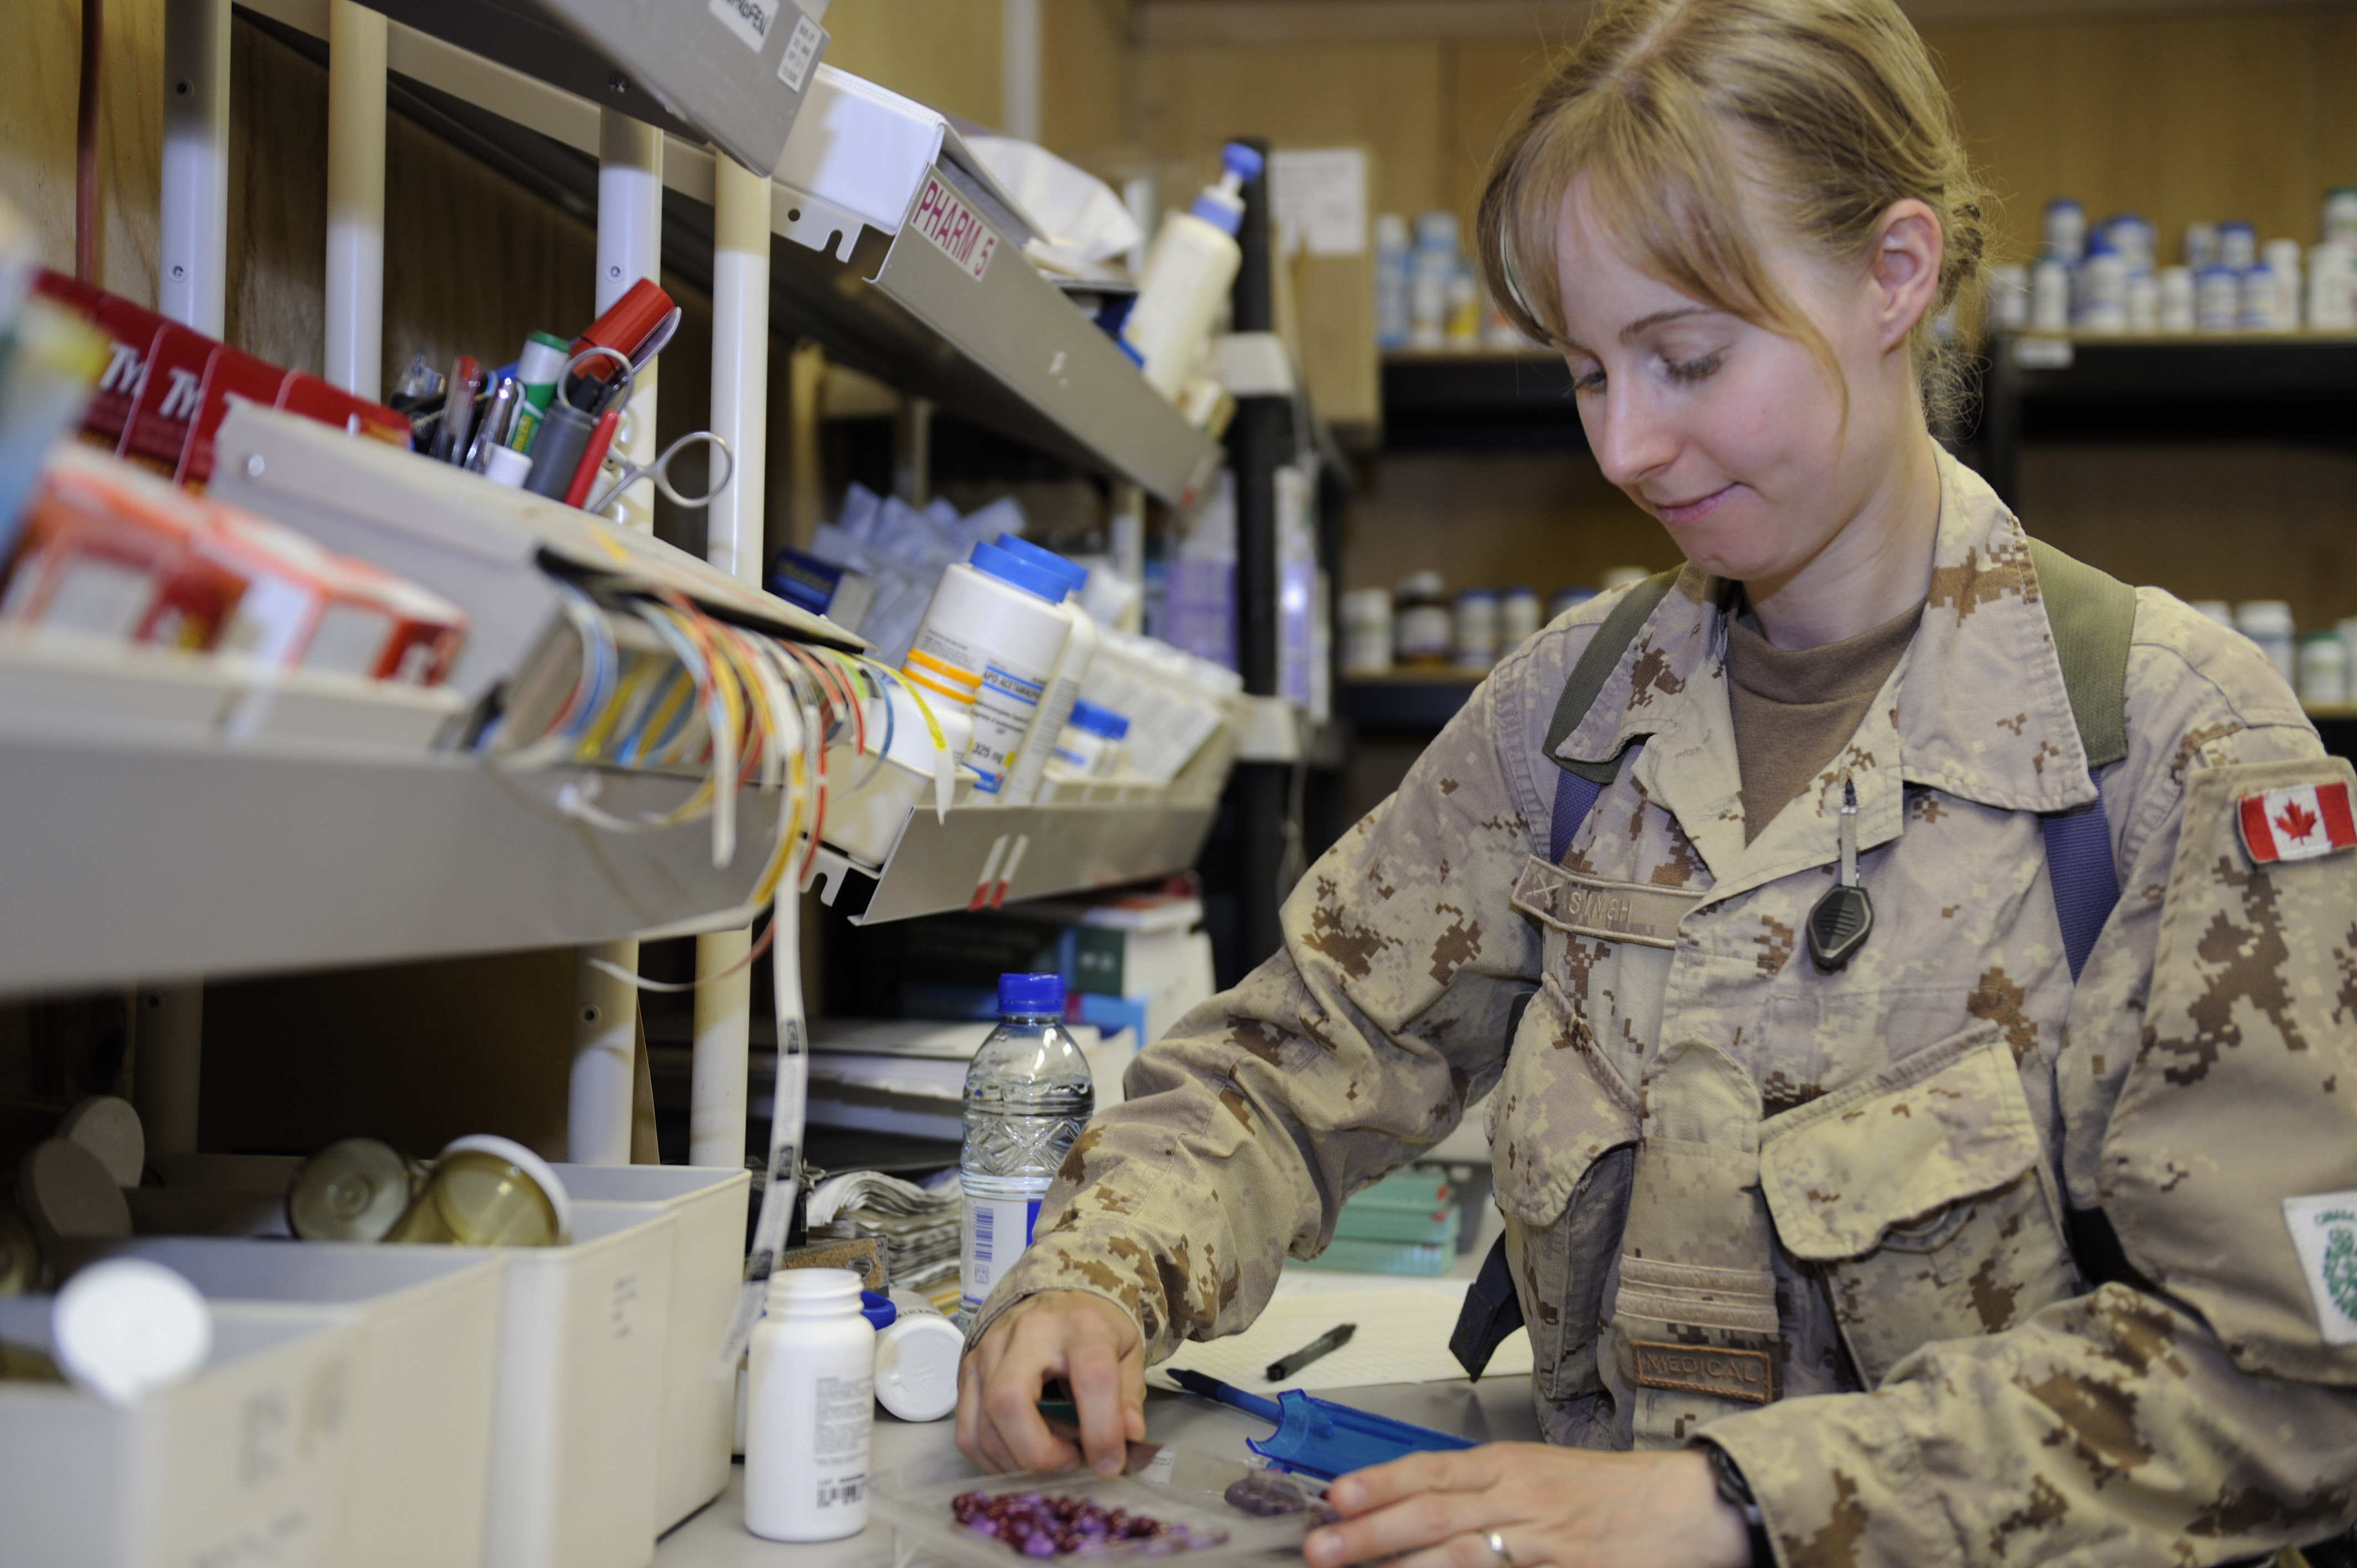 Article | Pharmacy Officers: Dispensing more than over-the